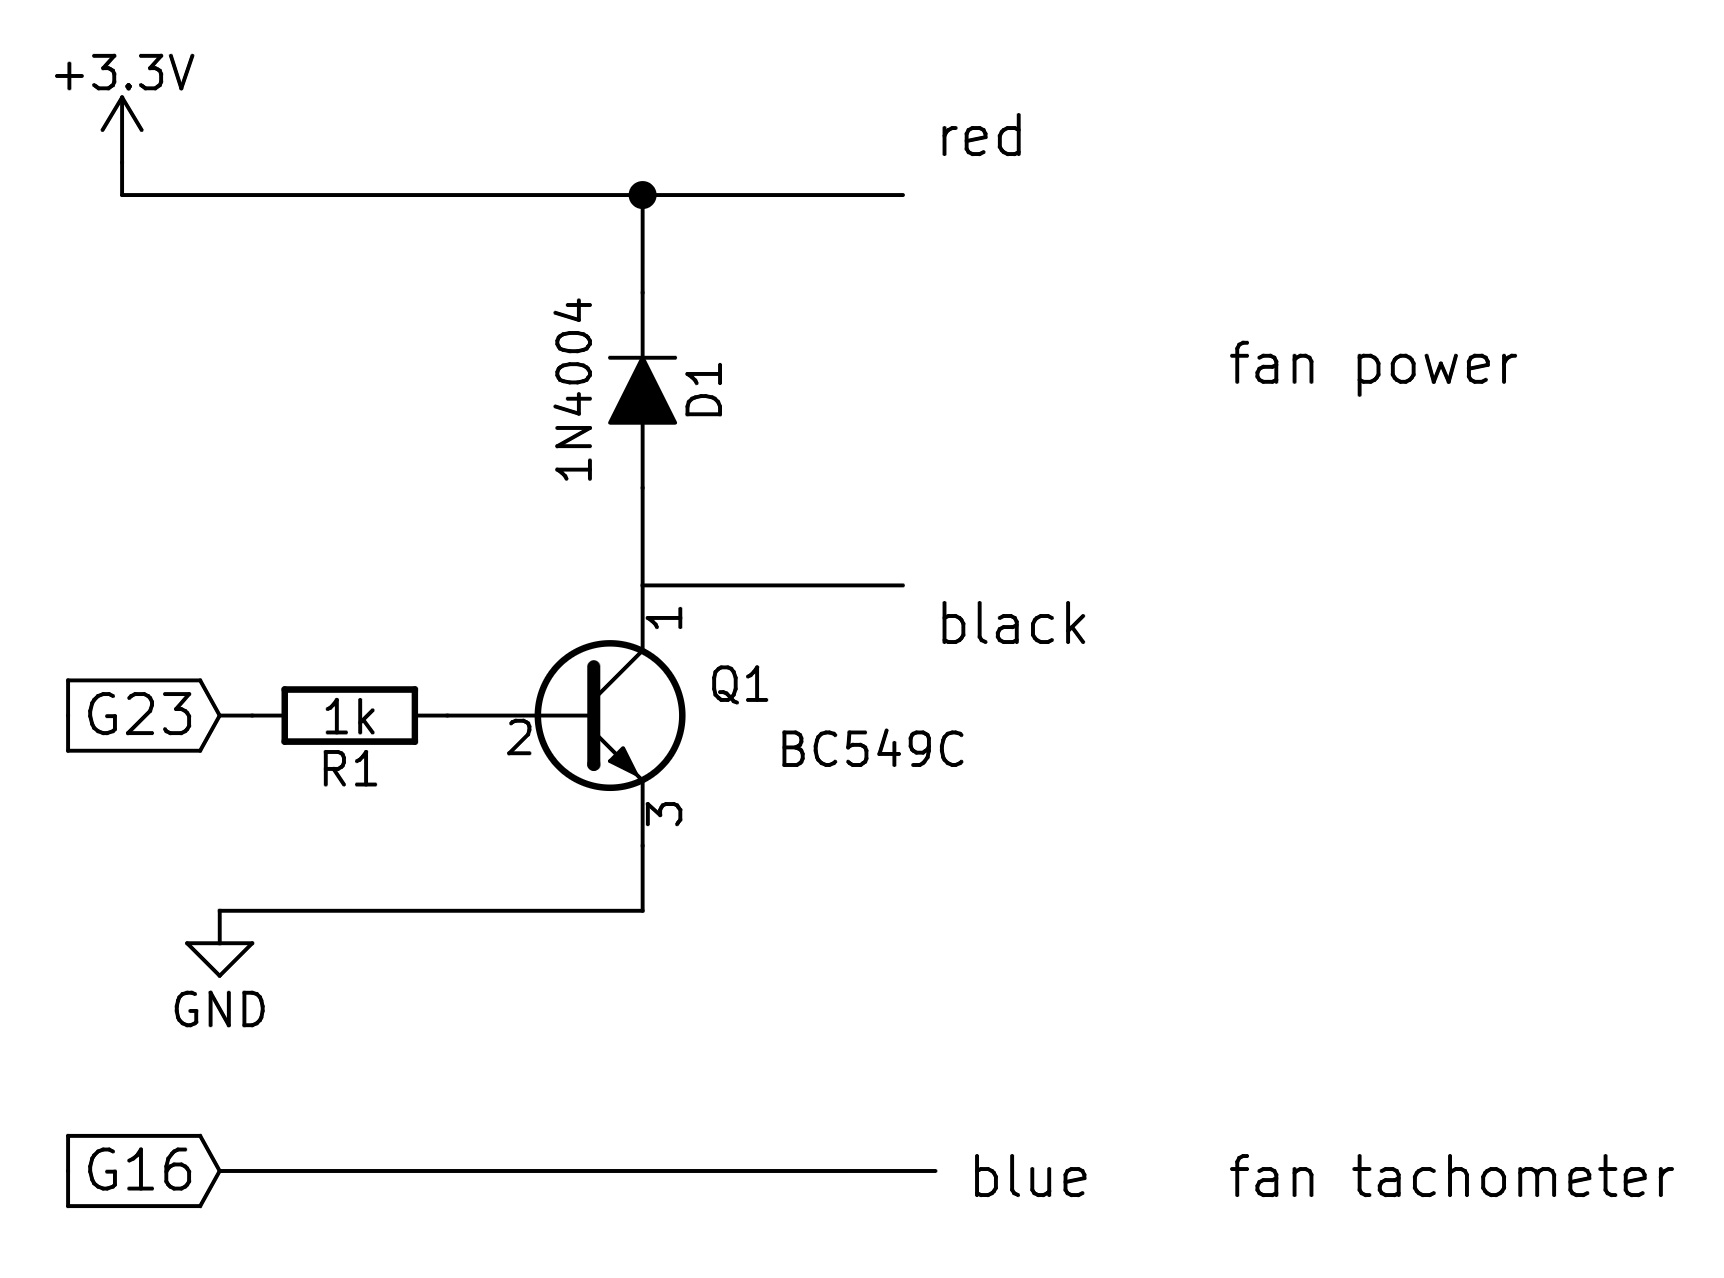 wiring 3w pwm fan wire diagram diagrams for wiring bathroom fan and lights  at bakdesigns.co